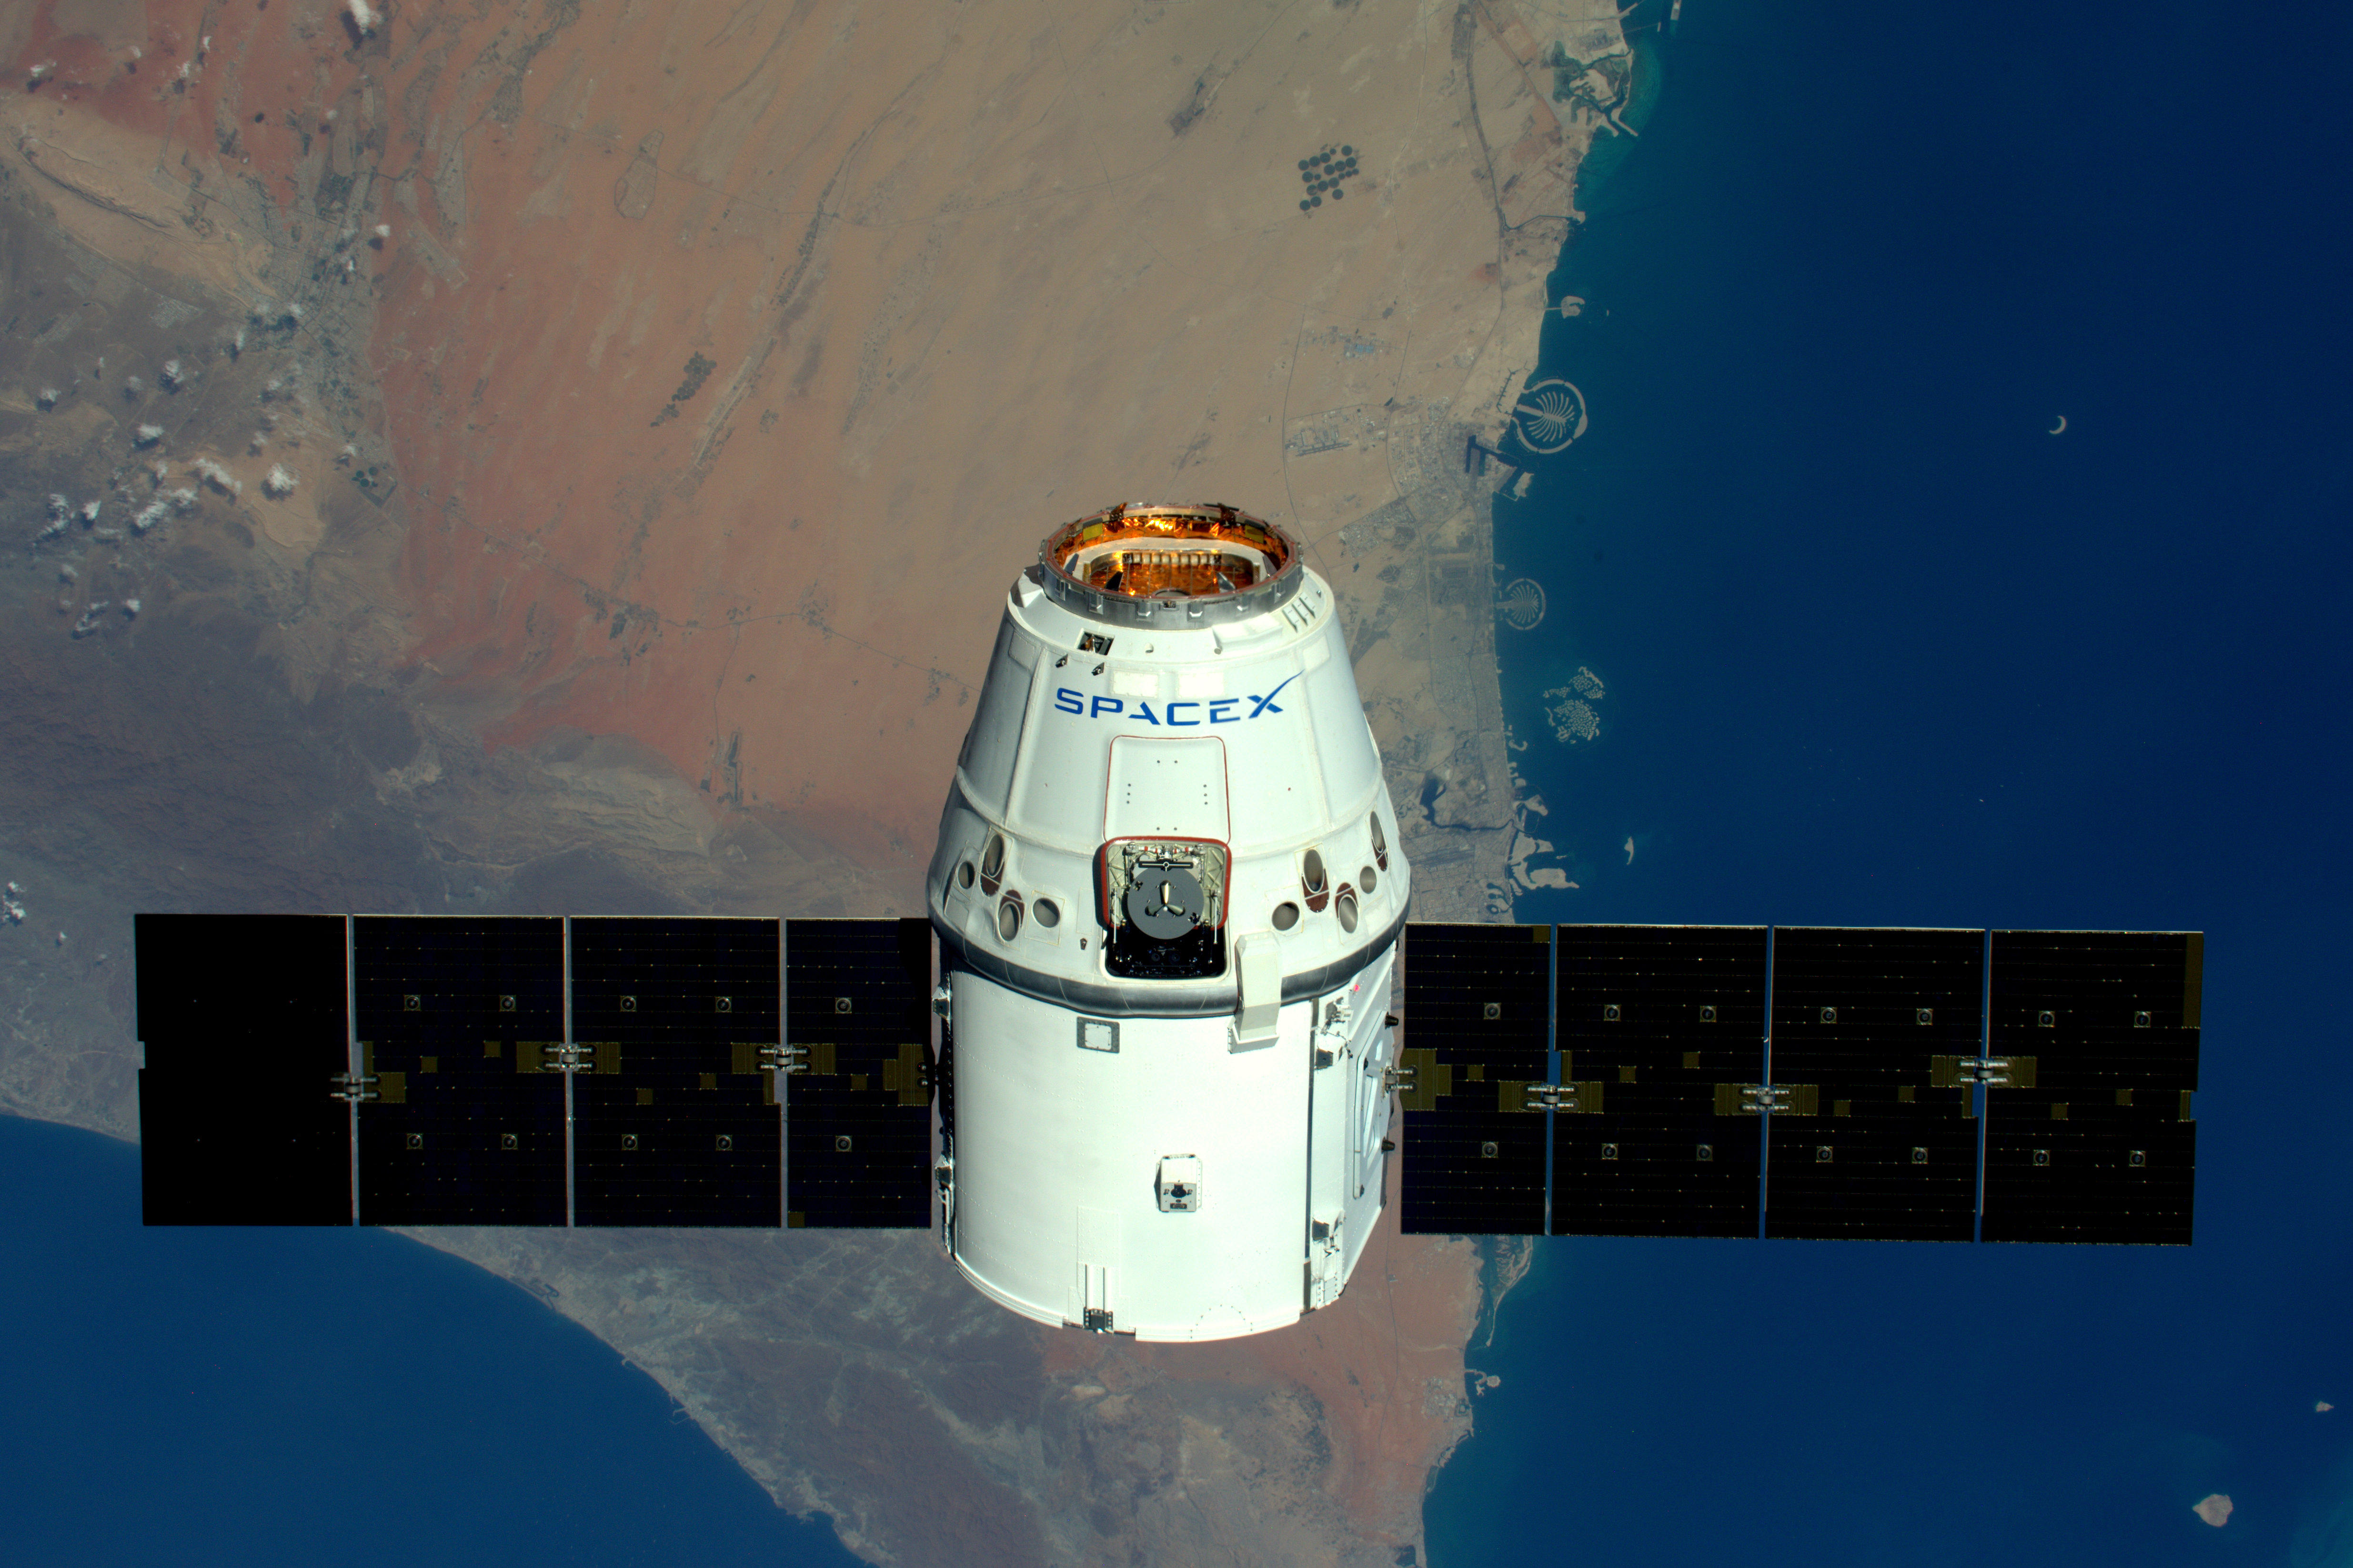 A SpaceX capsule above the Earth